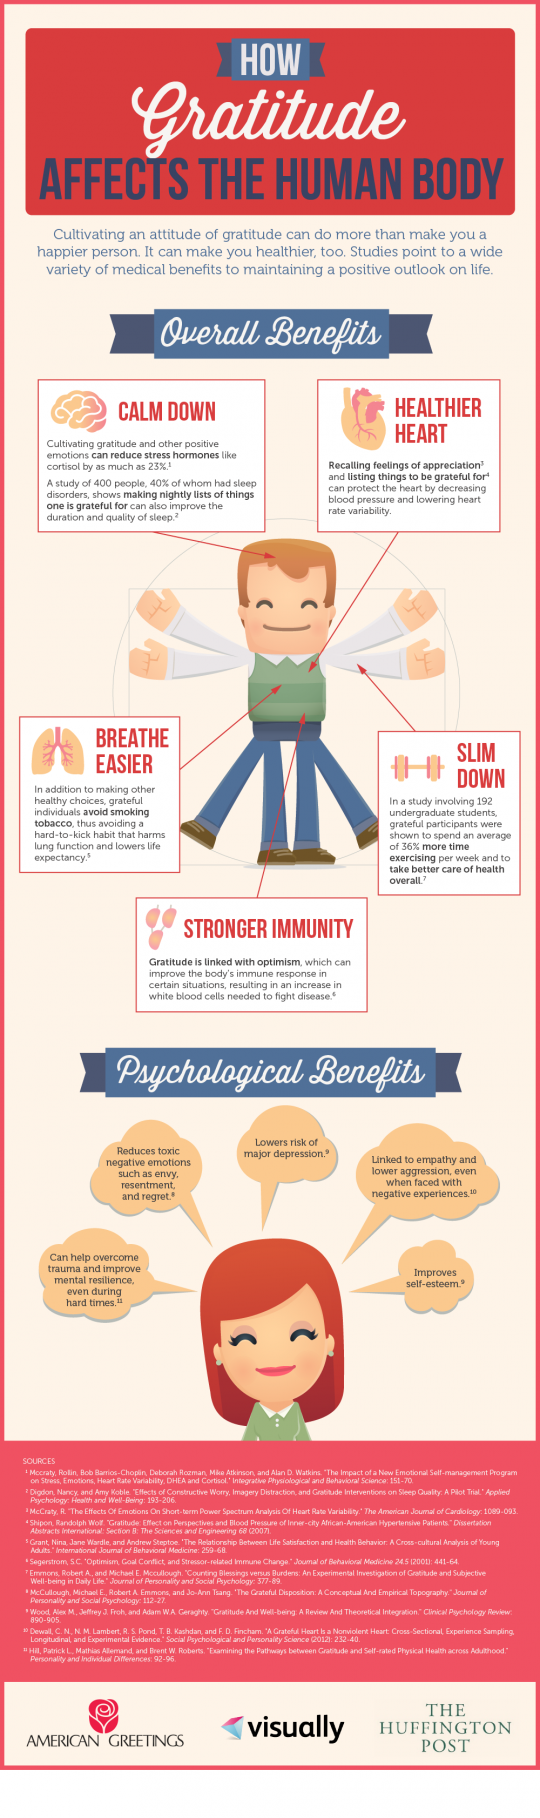 How Gratitude Affects the Human Body infographic Middle Class Dad being appreciative